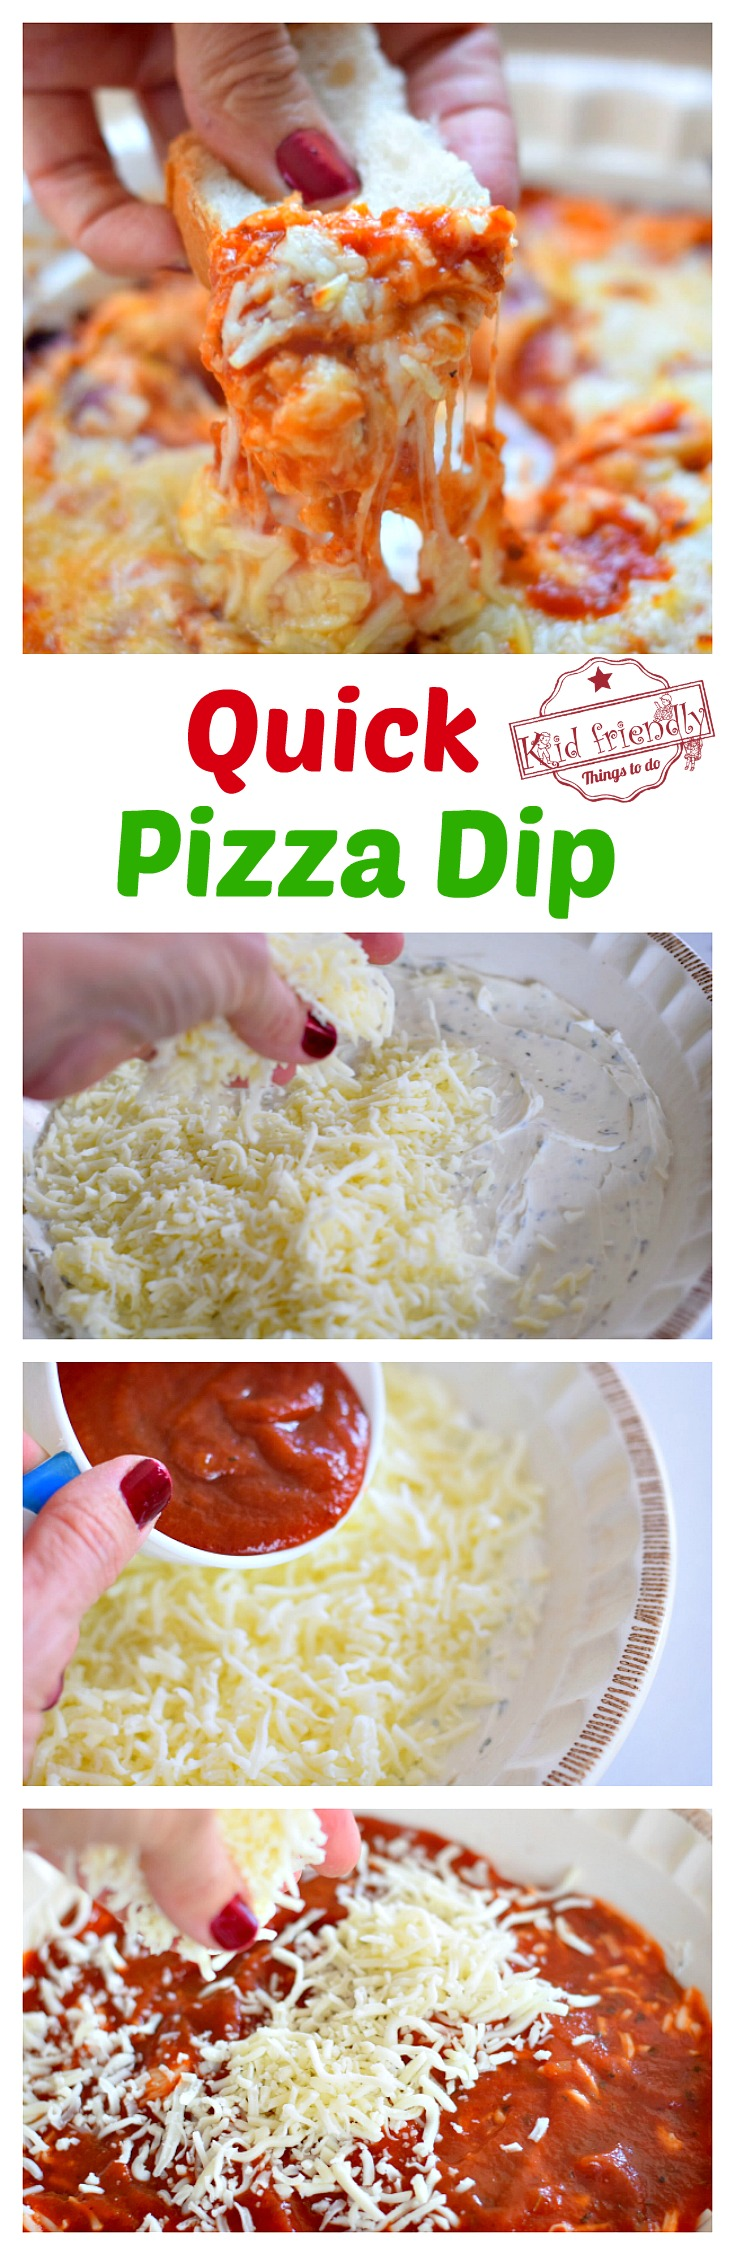 Classic Quick and Easy Hot Pizza Dip Recipe With Cream Cheese - Perfect appetizer for game days, holidays and crustless pizza fixes - www.kidfriendlythingstodo.com